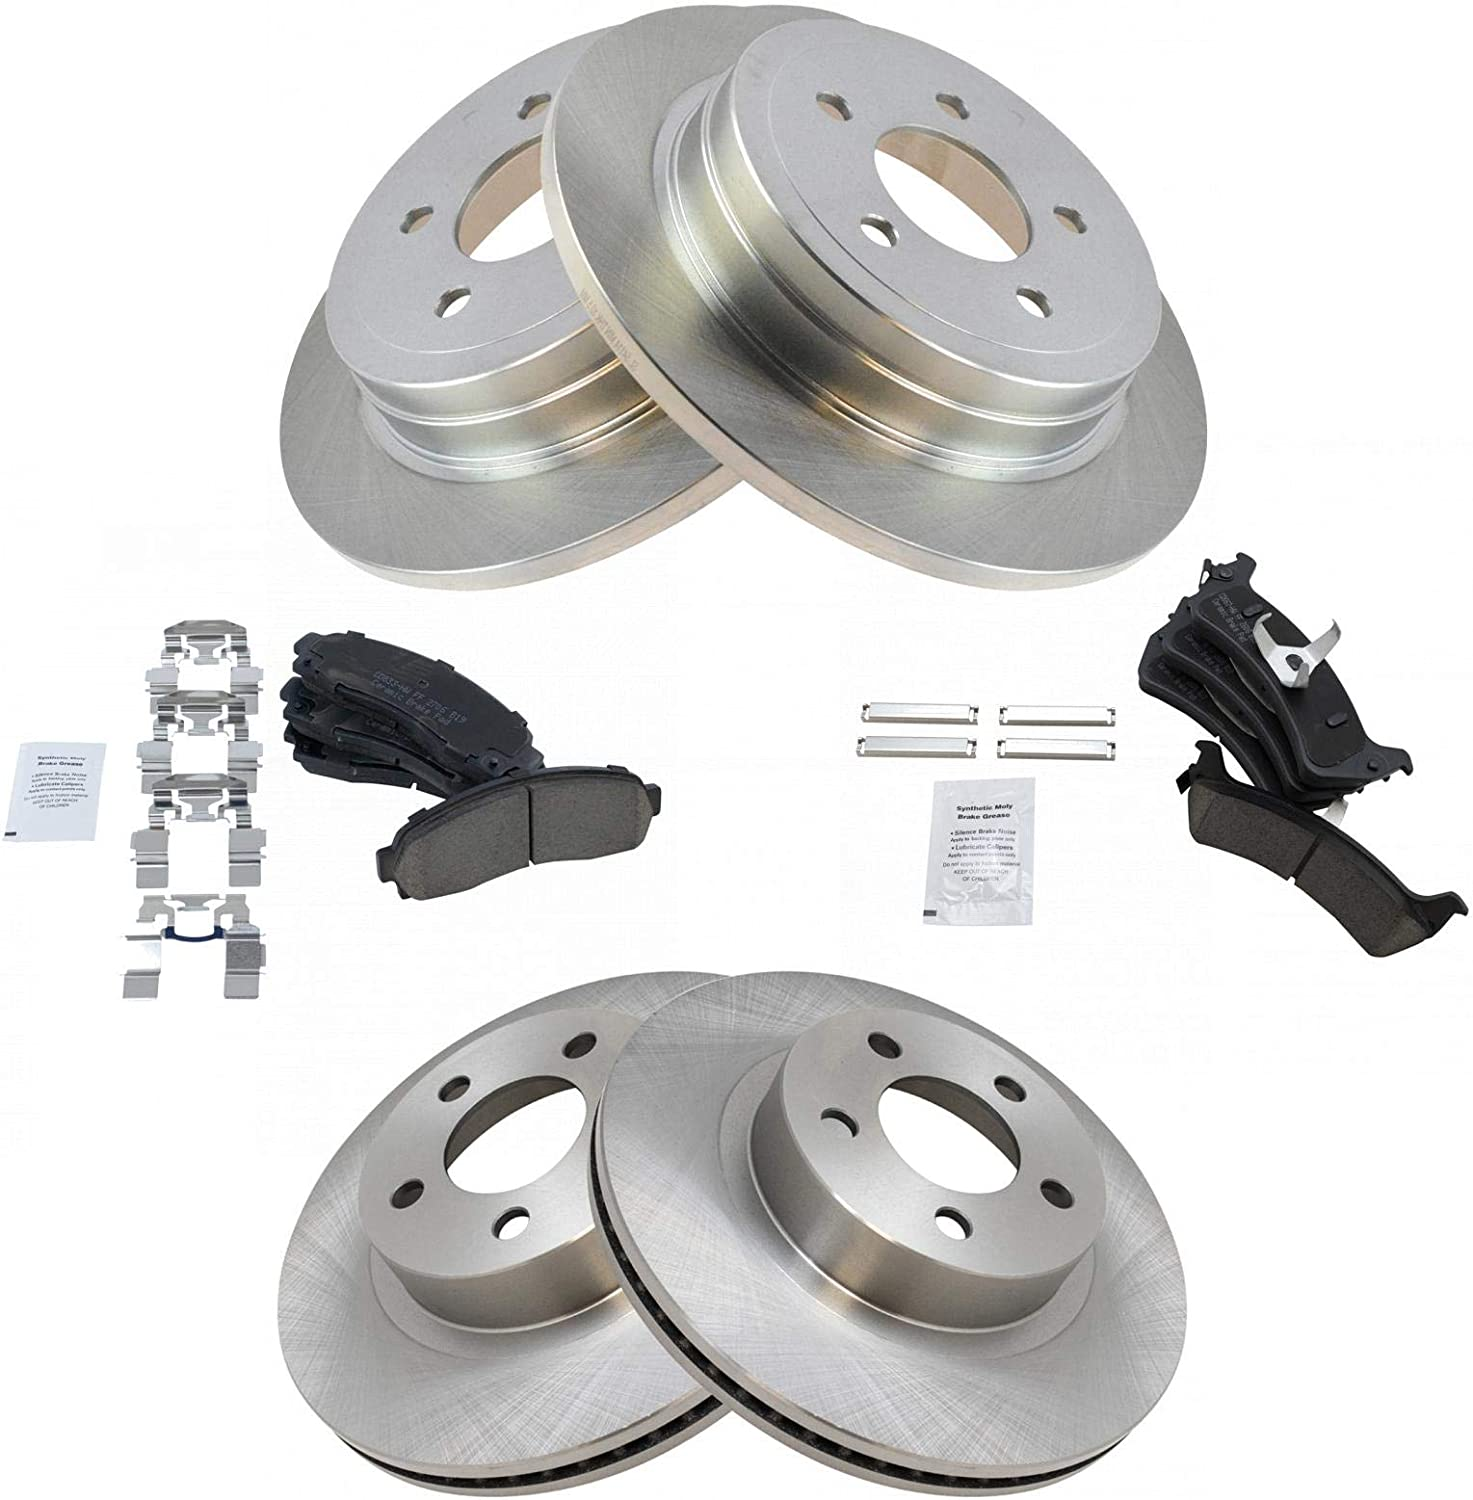 Brake Pads Include Hardware With Two Years Manufacturer Warranty Rear Disc Brake Rotors and Ceramic Brake Pads for 2004 Ford Explorer